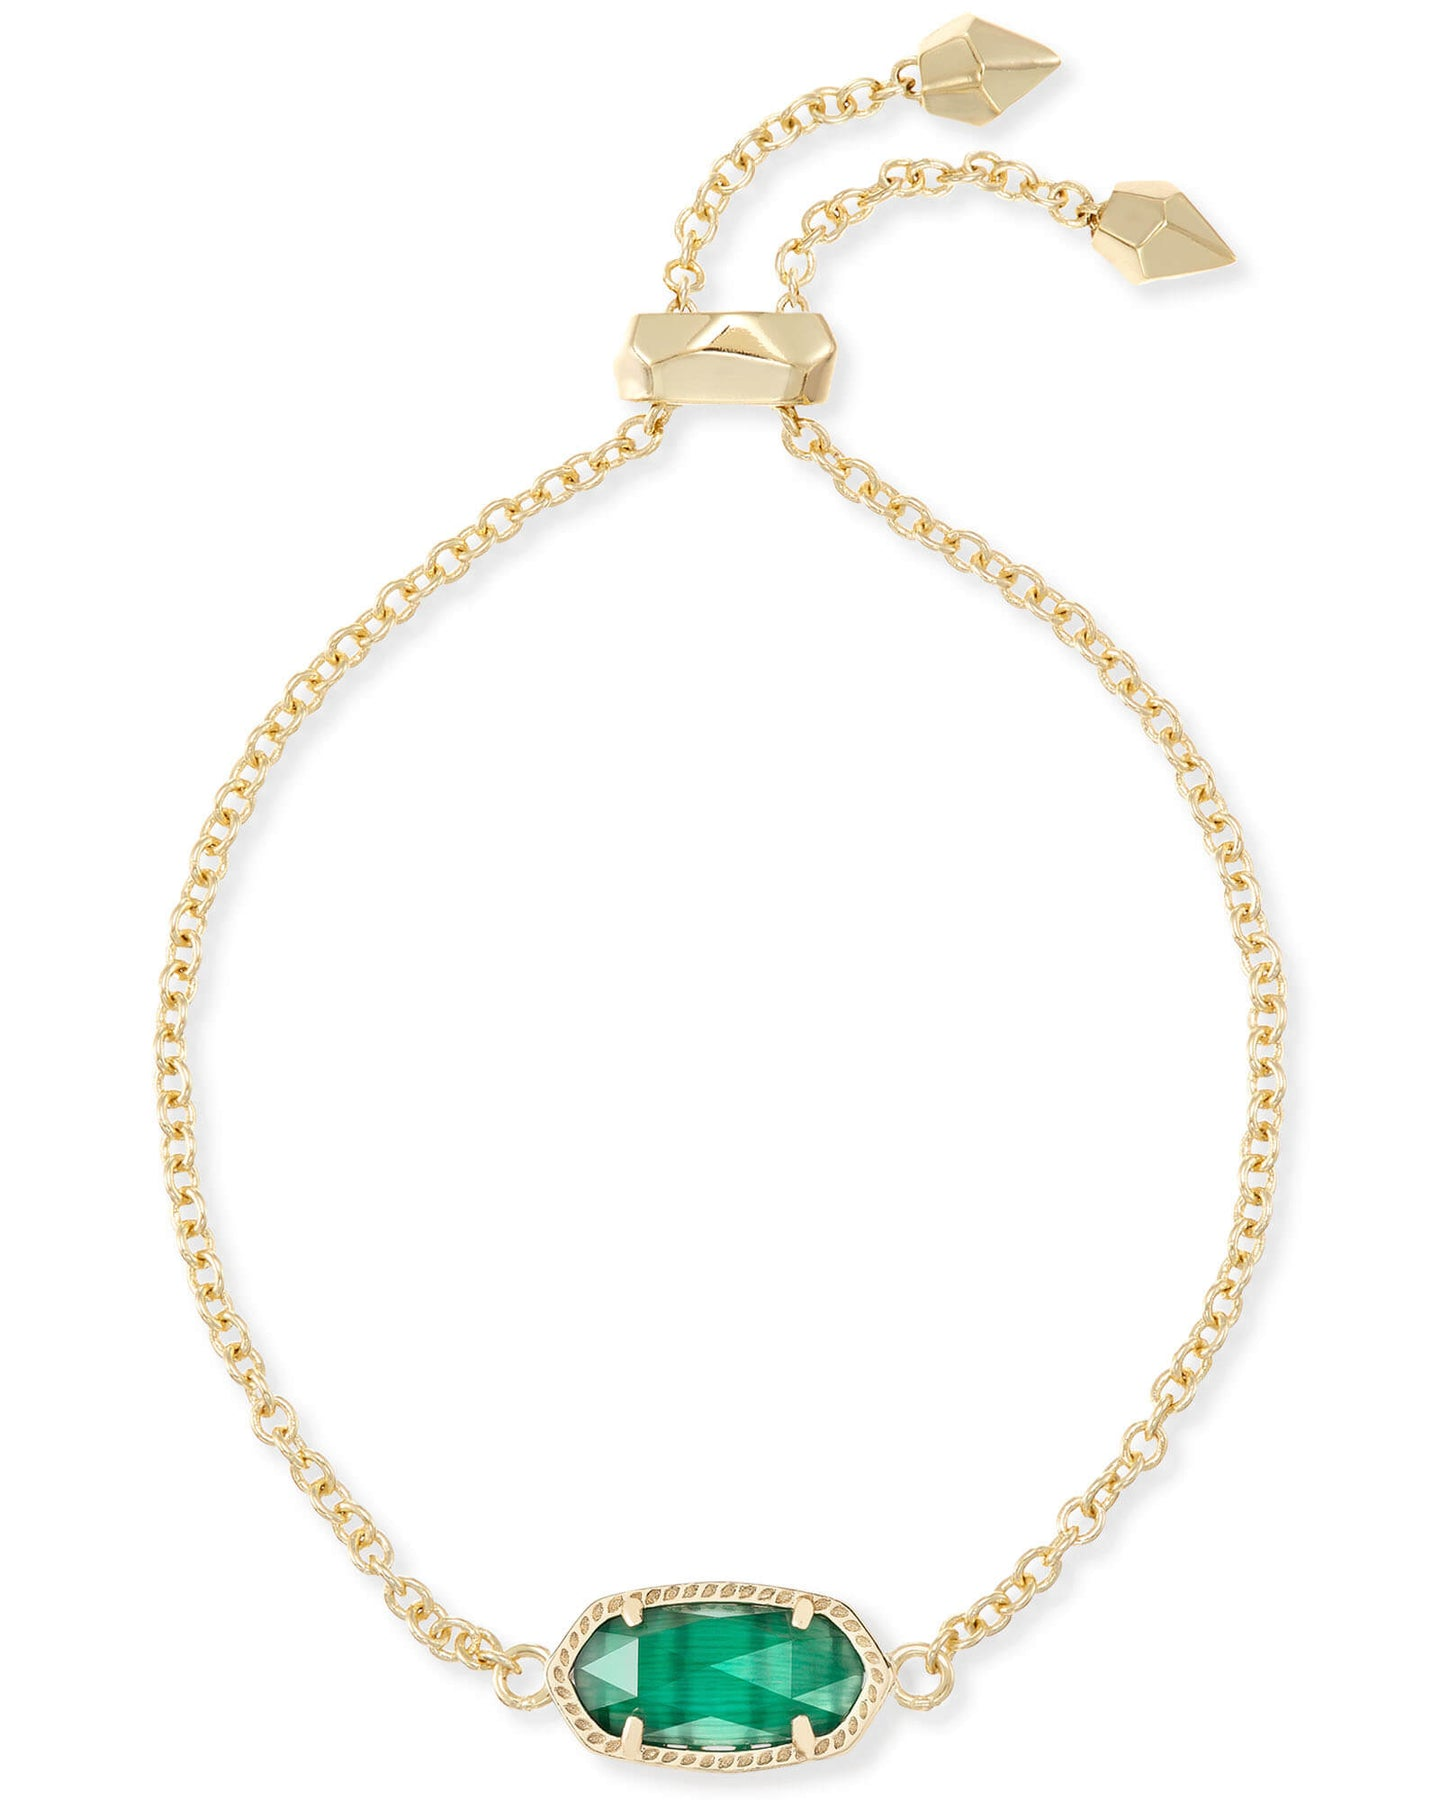 Kendra Scott Elaina Bracelet - Gold Emerald Cats Eye